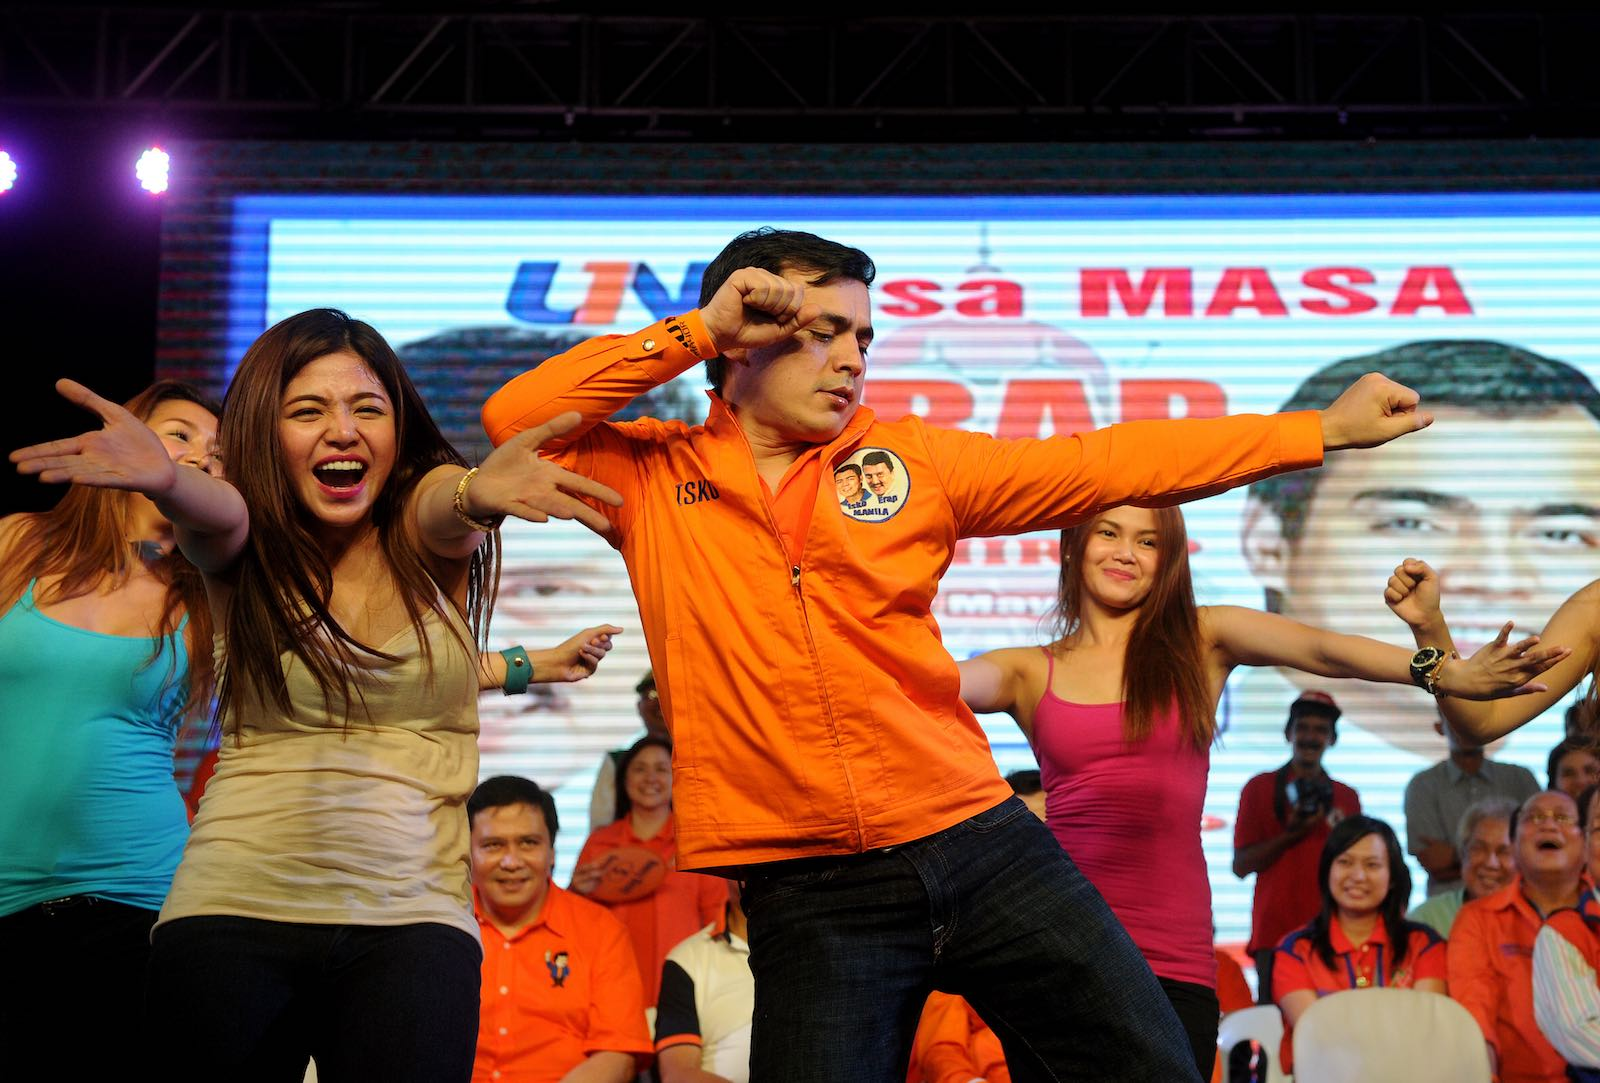 Different moves: back in 2013, Isko Moreno, centre, ran with Joseph Estrada, but this week defeated him to become Manila's mayor (Photo: Noel Celis via Getty)